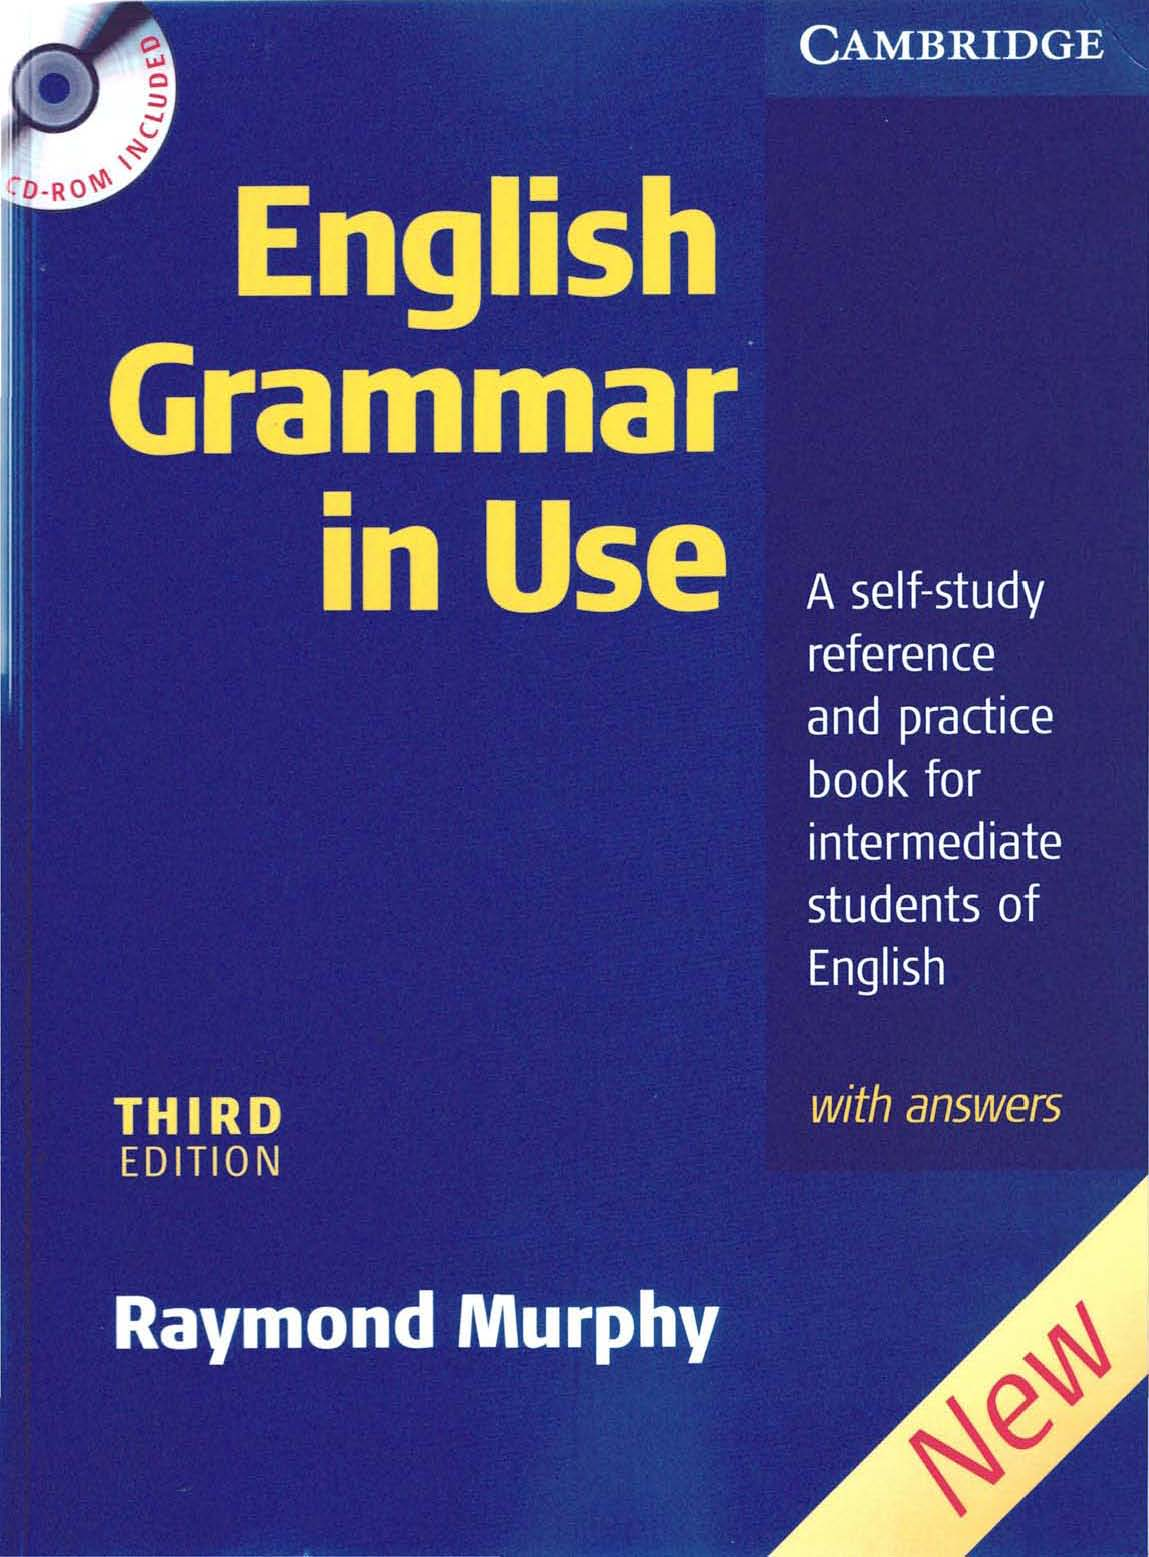 english grammar essay books From: jack groutage subject: the elements of english grammar: west e-mail this message to a friend title: the elements of english grammar subtitle: with a chapter on essay-writing published: 2017 publisher: cambridge university press http://cambridgeorg author: alfred.